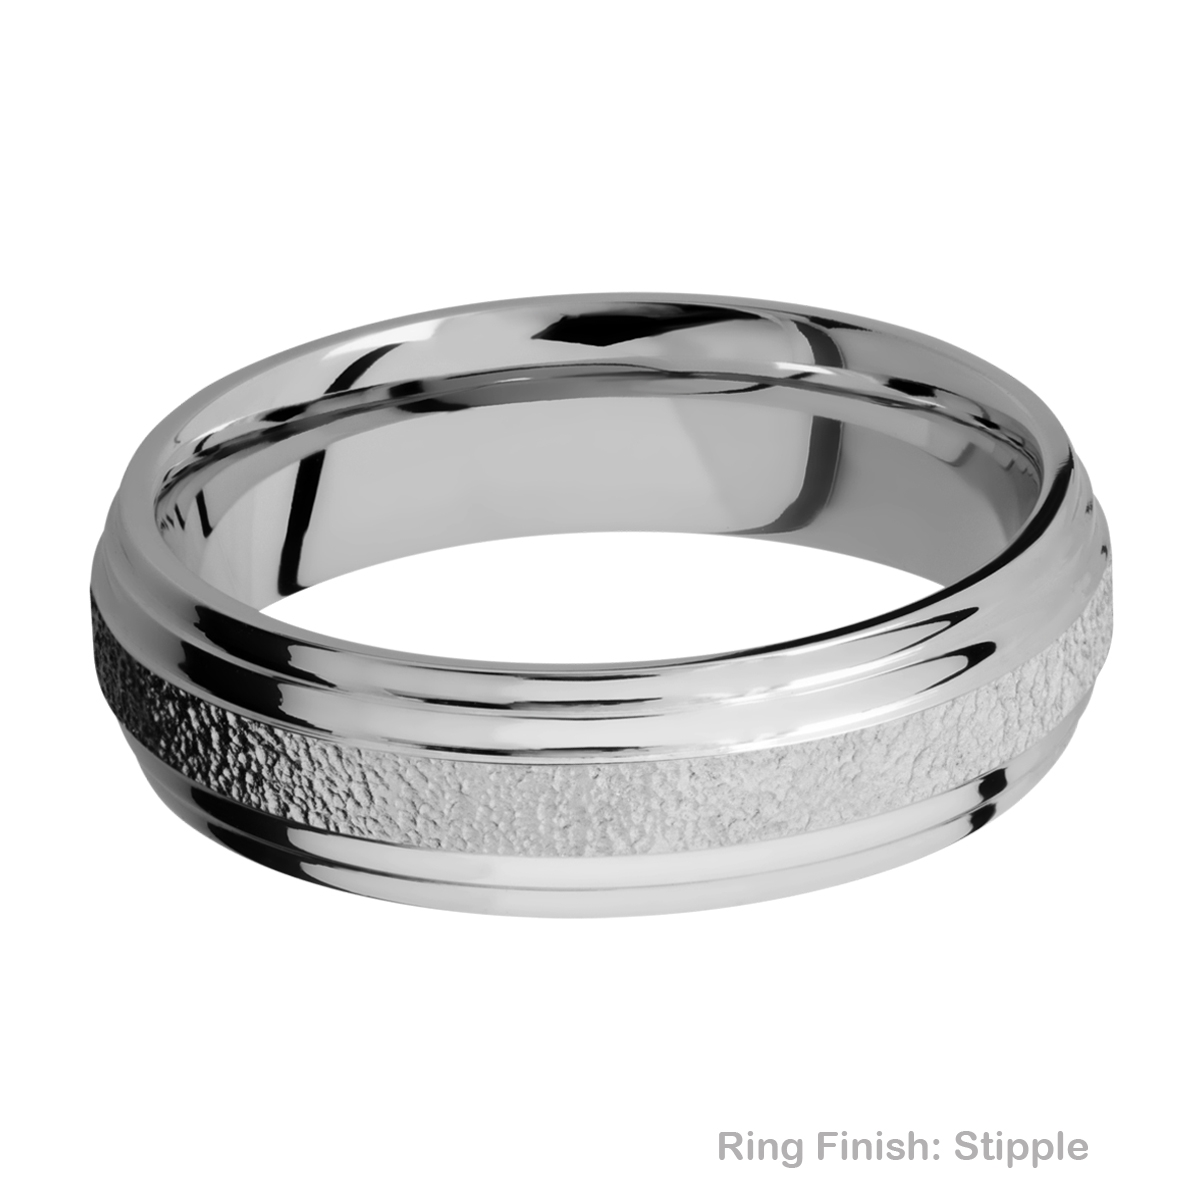 Lashbrook 6F2S Titanium Wedding Ring or Band Alternative View 16